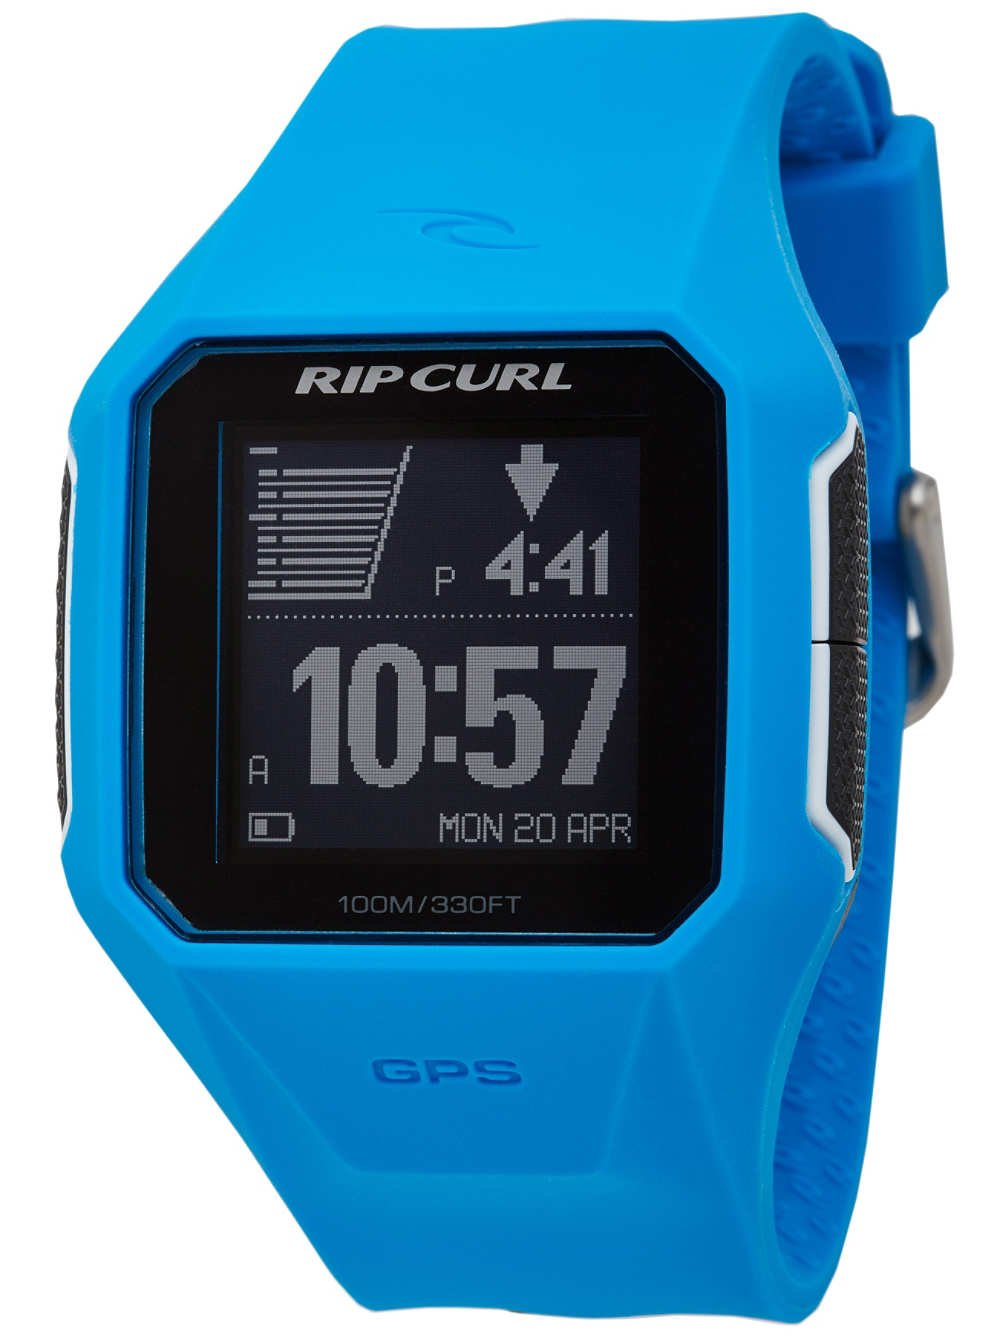 RipCurl Search GPS Surf Watch - Blue